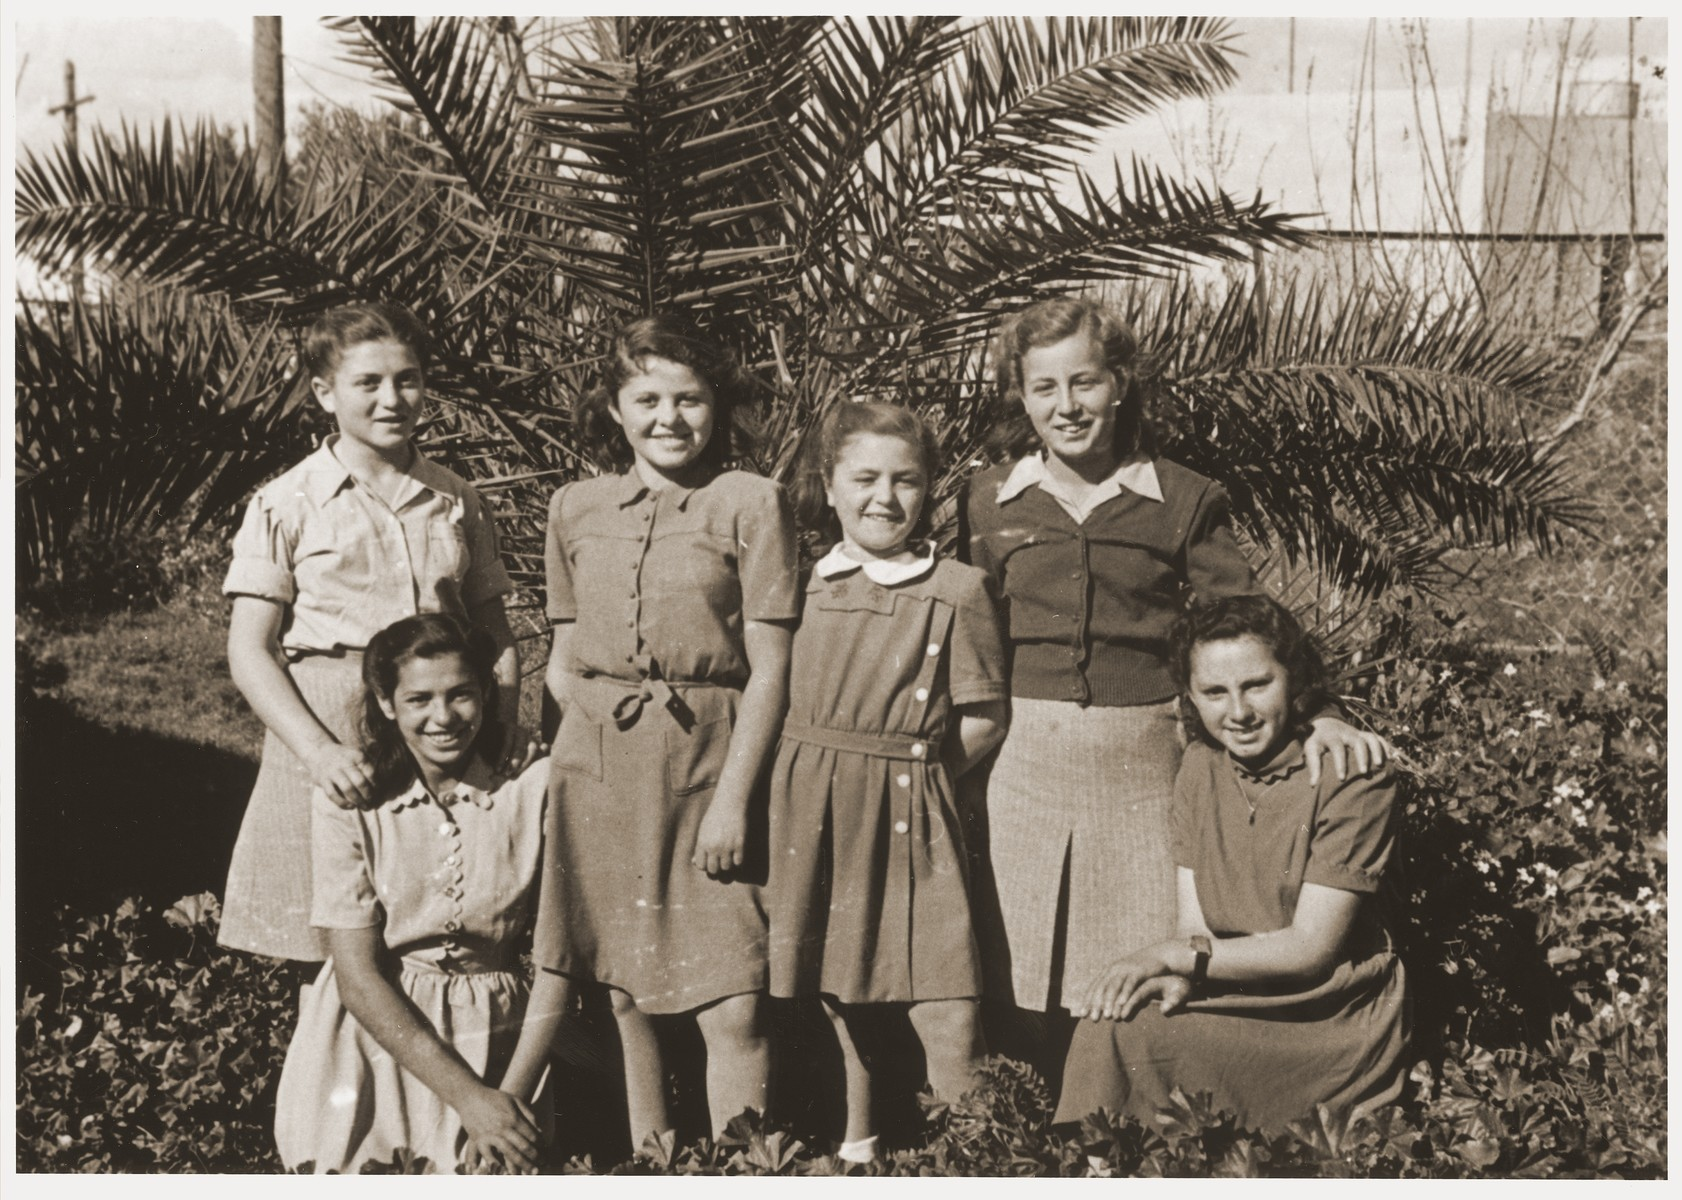 """Group portrait of former Transnistria orphans, now settled in Palestine due in part to the efforts of Anny Andermann.  The inscription on the back of the photo reads: """"A souvenir; the time passes quickly, the days follow each other, we write to you a souvenir because we don't know how long we will live, and as a sign of our love for you.  Anutza, Dora, Shana, Sarina, Gisella.  May God repay you, dear and good Mrs. Andermann."""""""